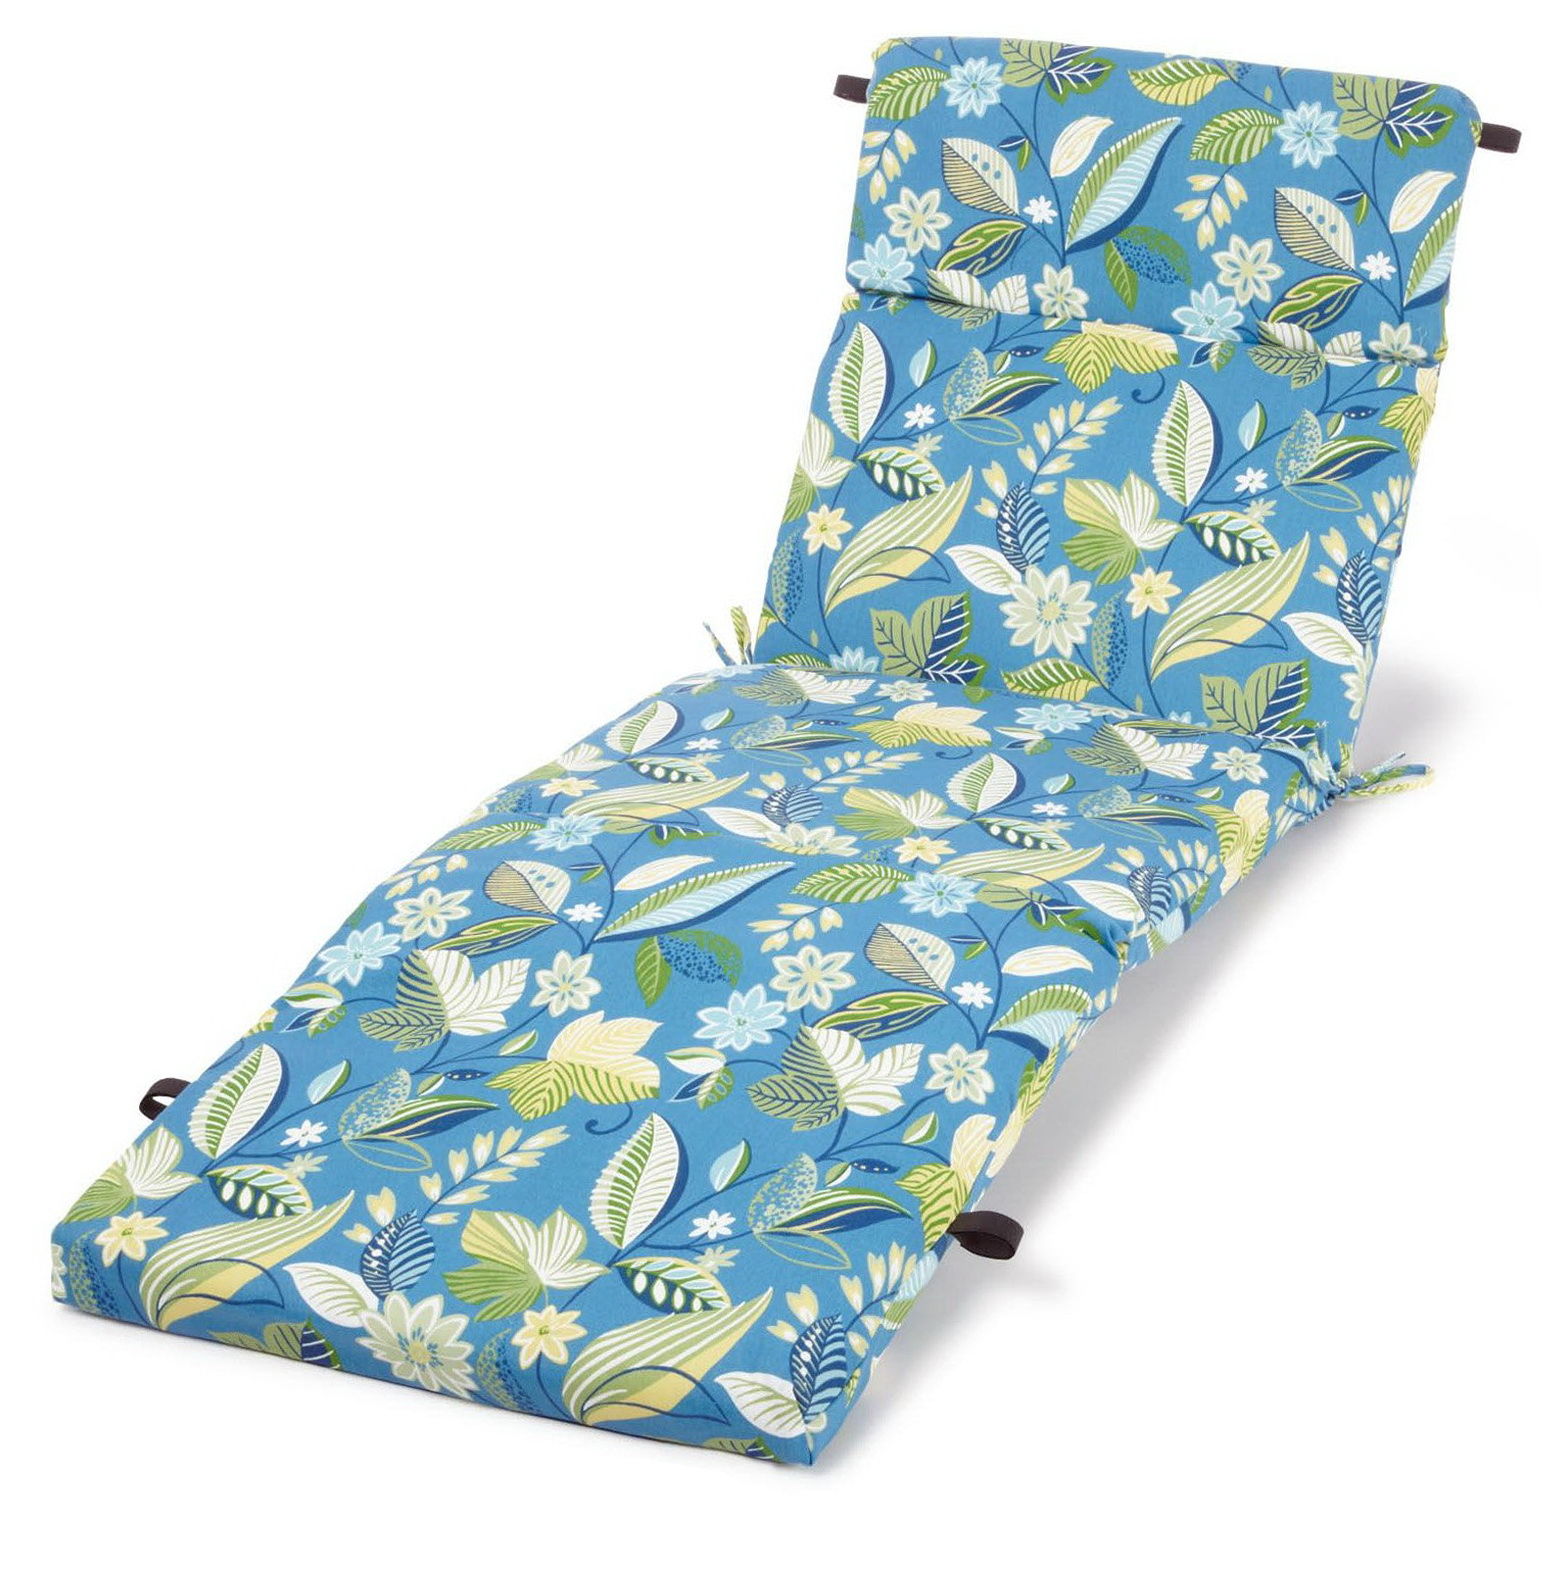 Chaise Lounge Cushion Covers Outdoor